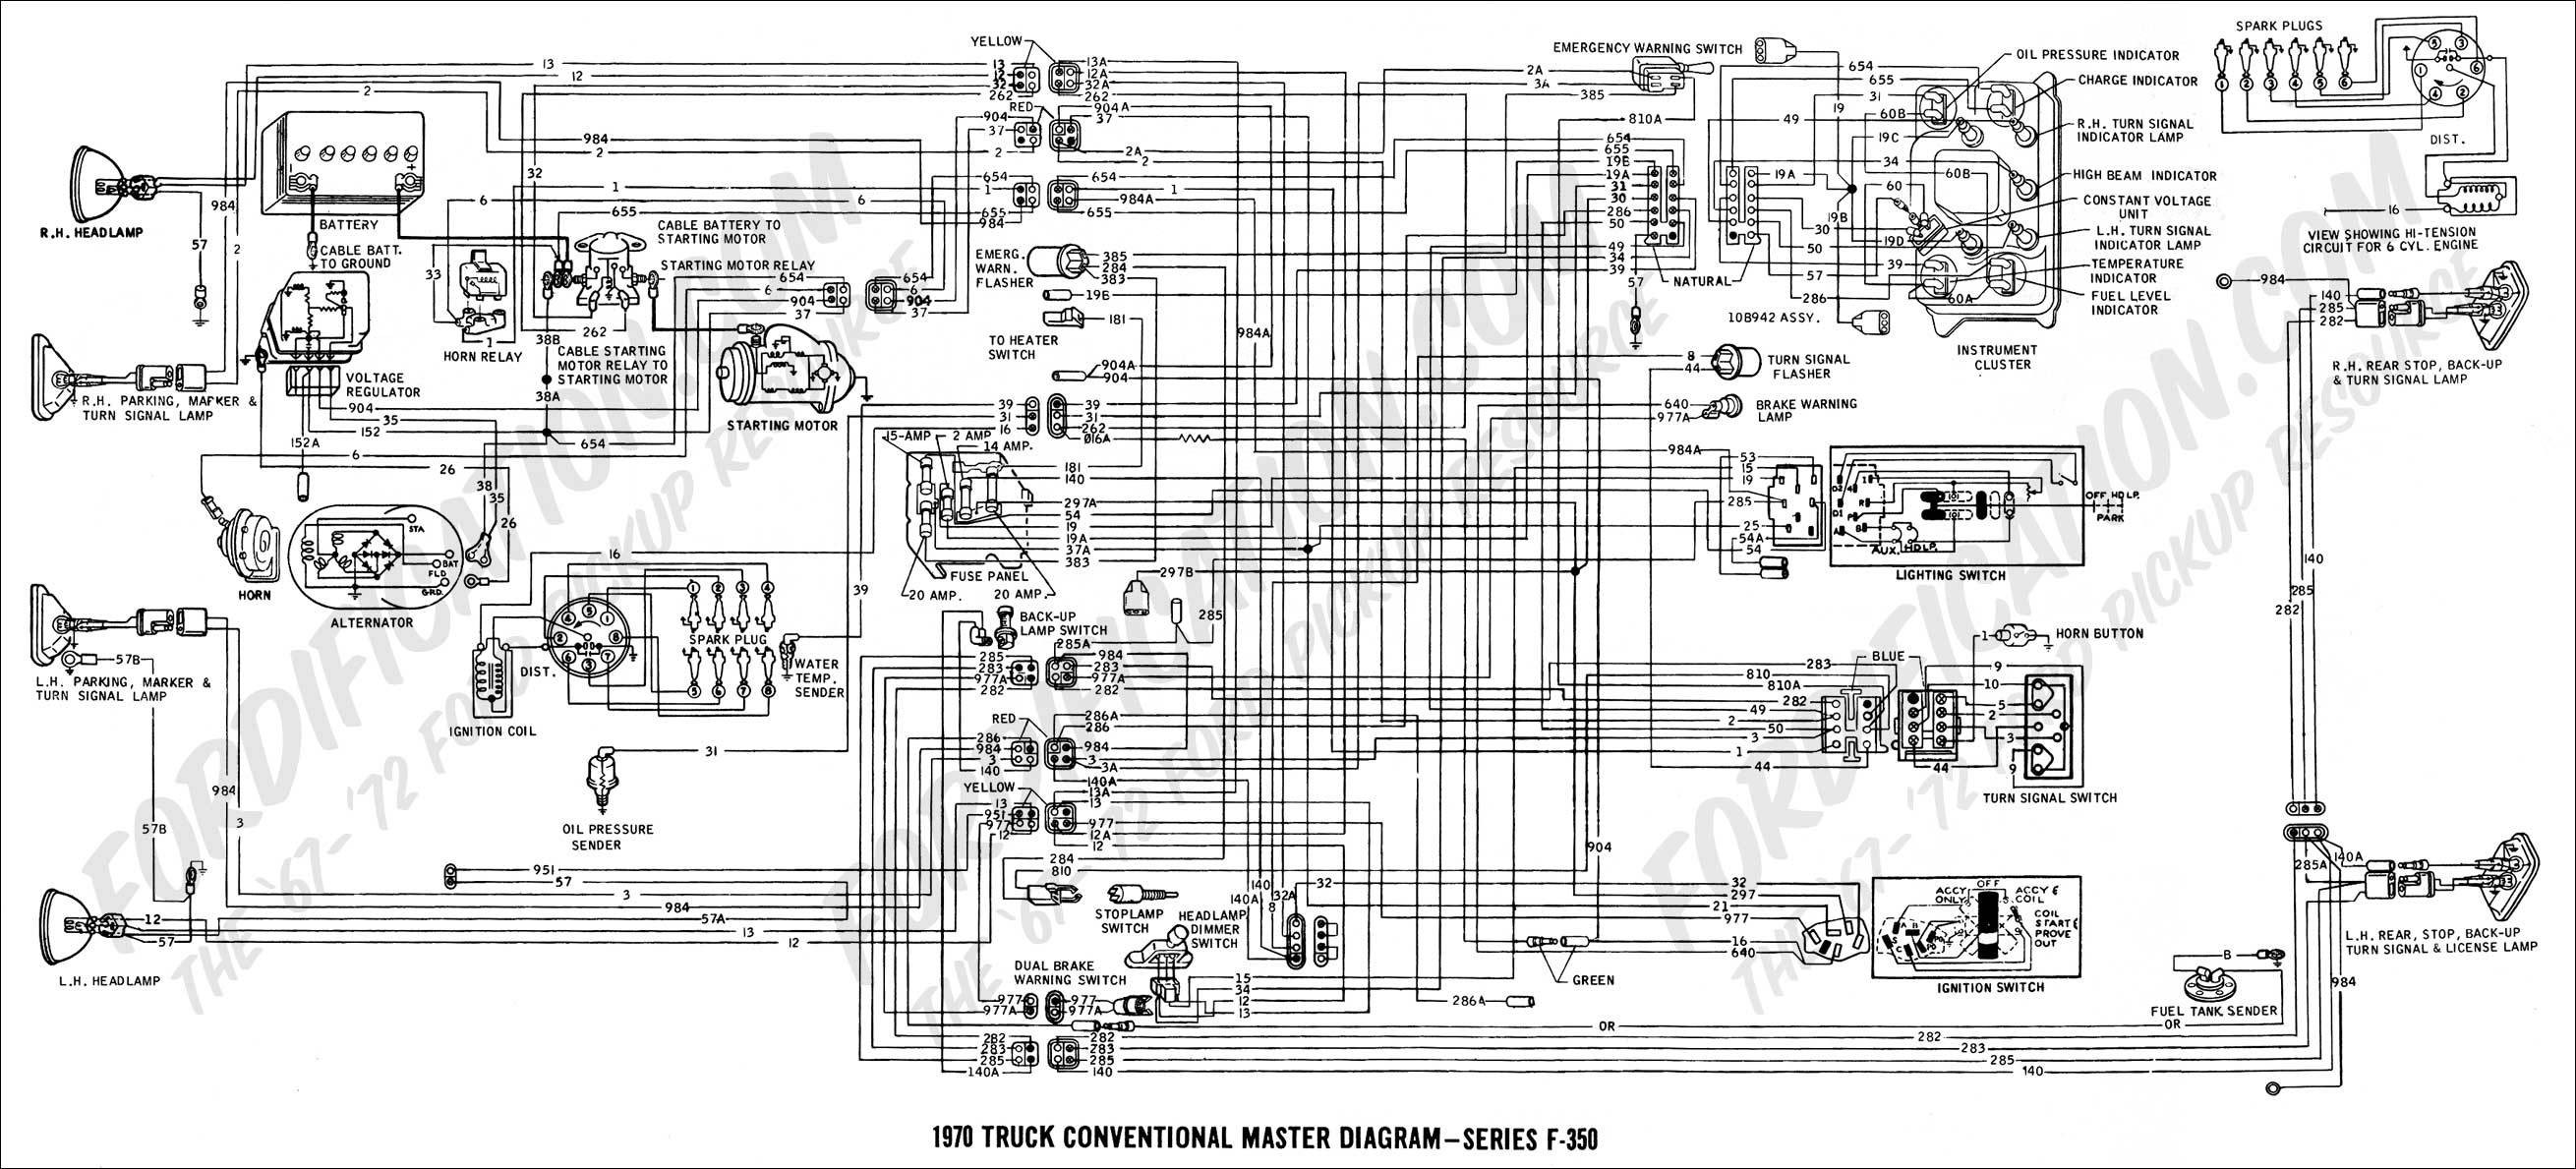 Electrical Wiring Diagrams for Dummies Peterbilt Wiring Diagrams Blurts Of Electrical Wiring Diagrams for Dummies